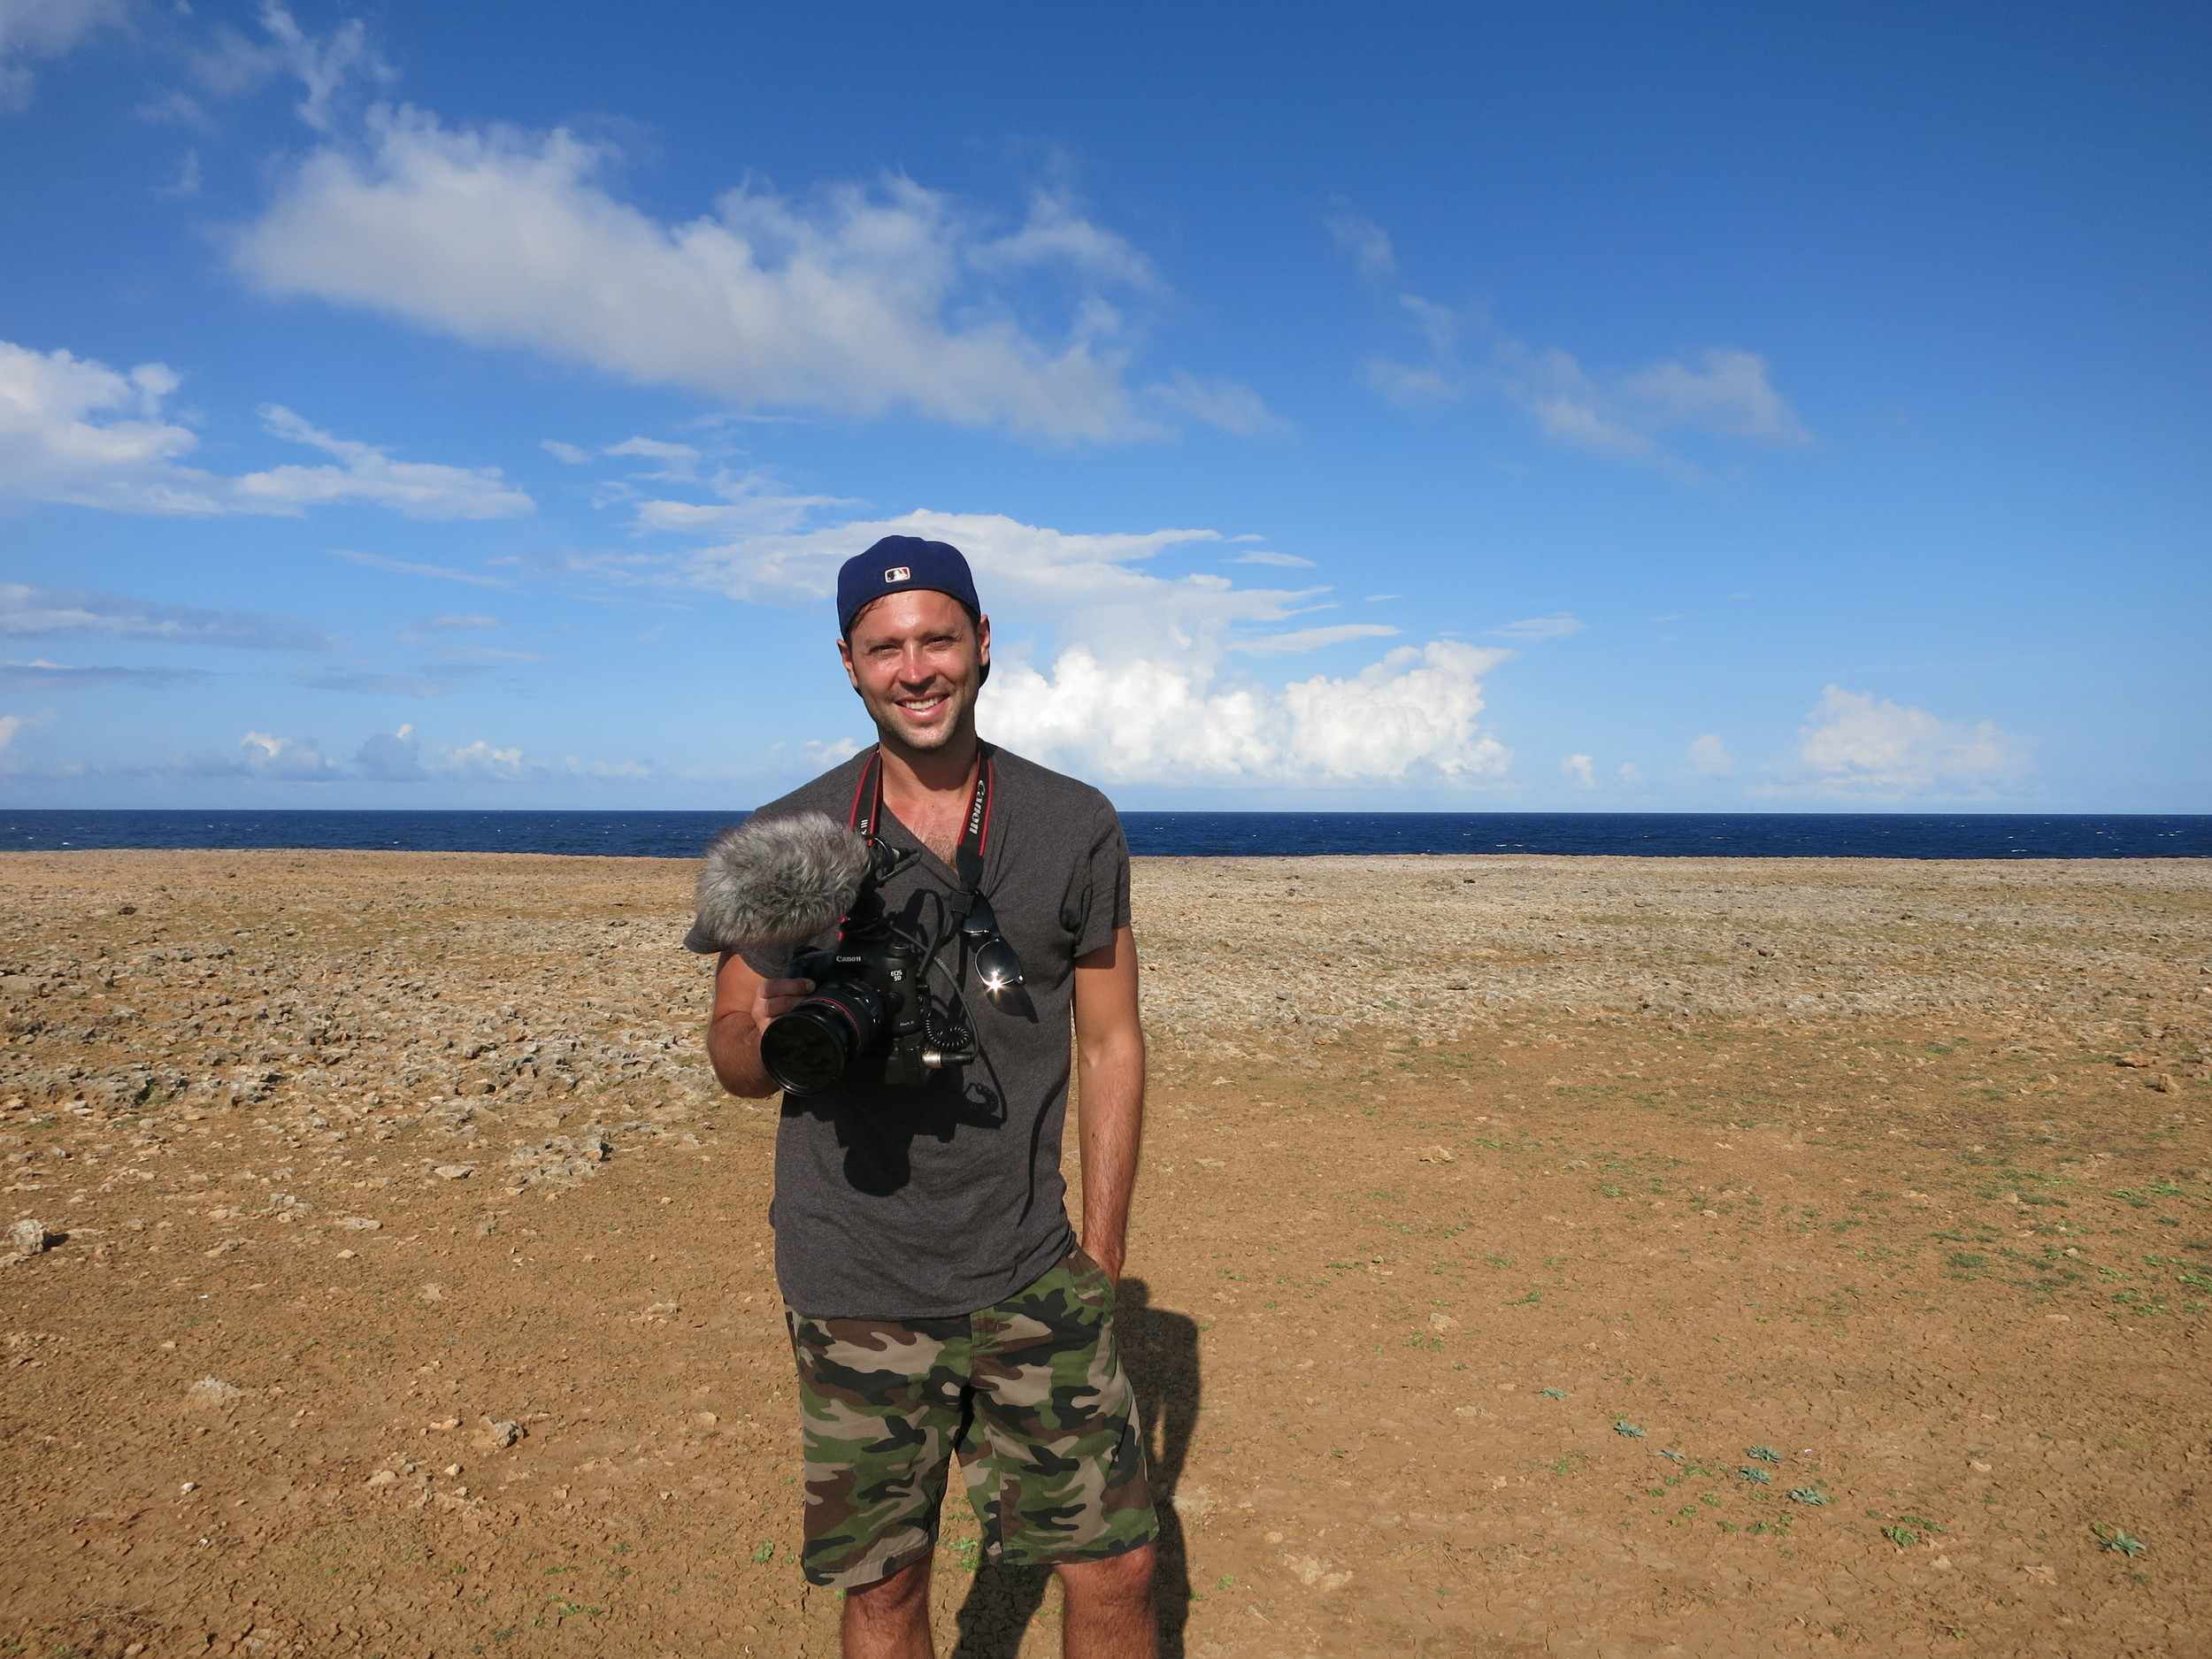 Me shooting some B-Roll at Arikok National Park in the south of Aruba.